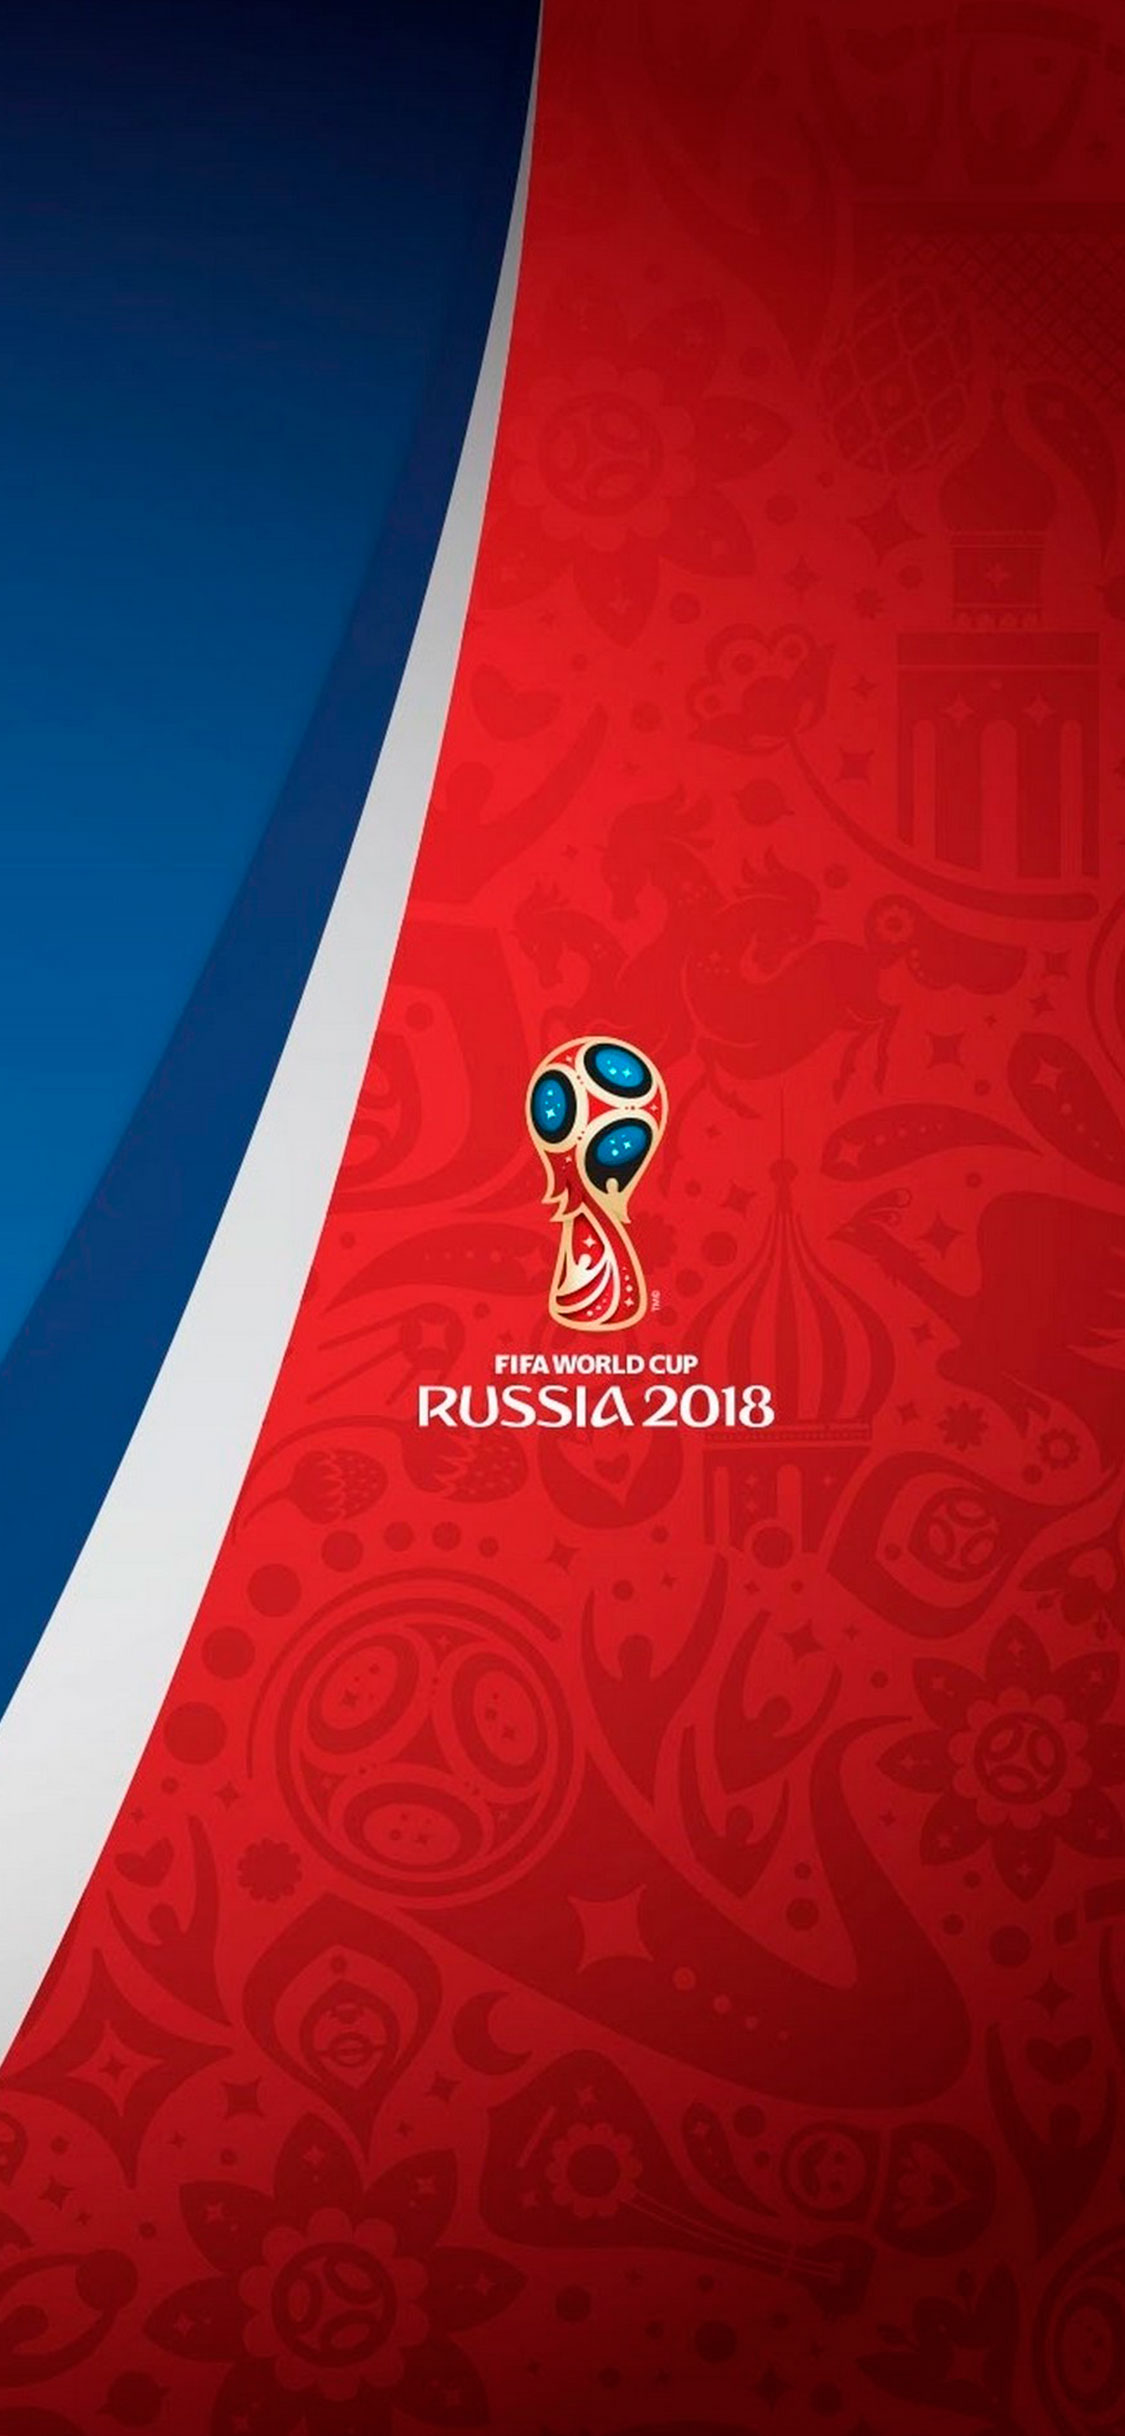 iPhone wallpaper world cup 2018 Fonds d'écran iPhone du 21/06/2018